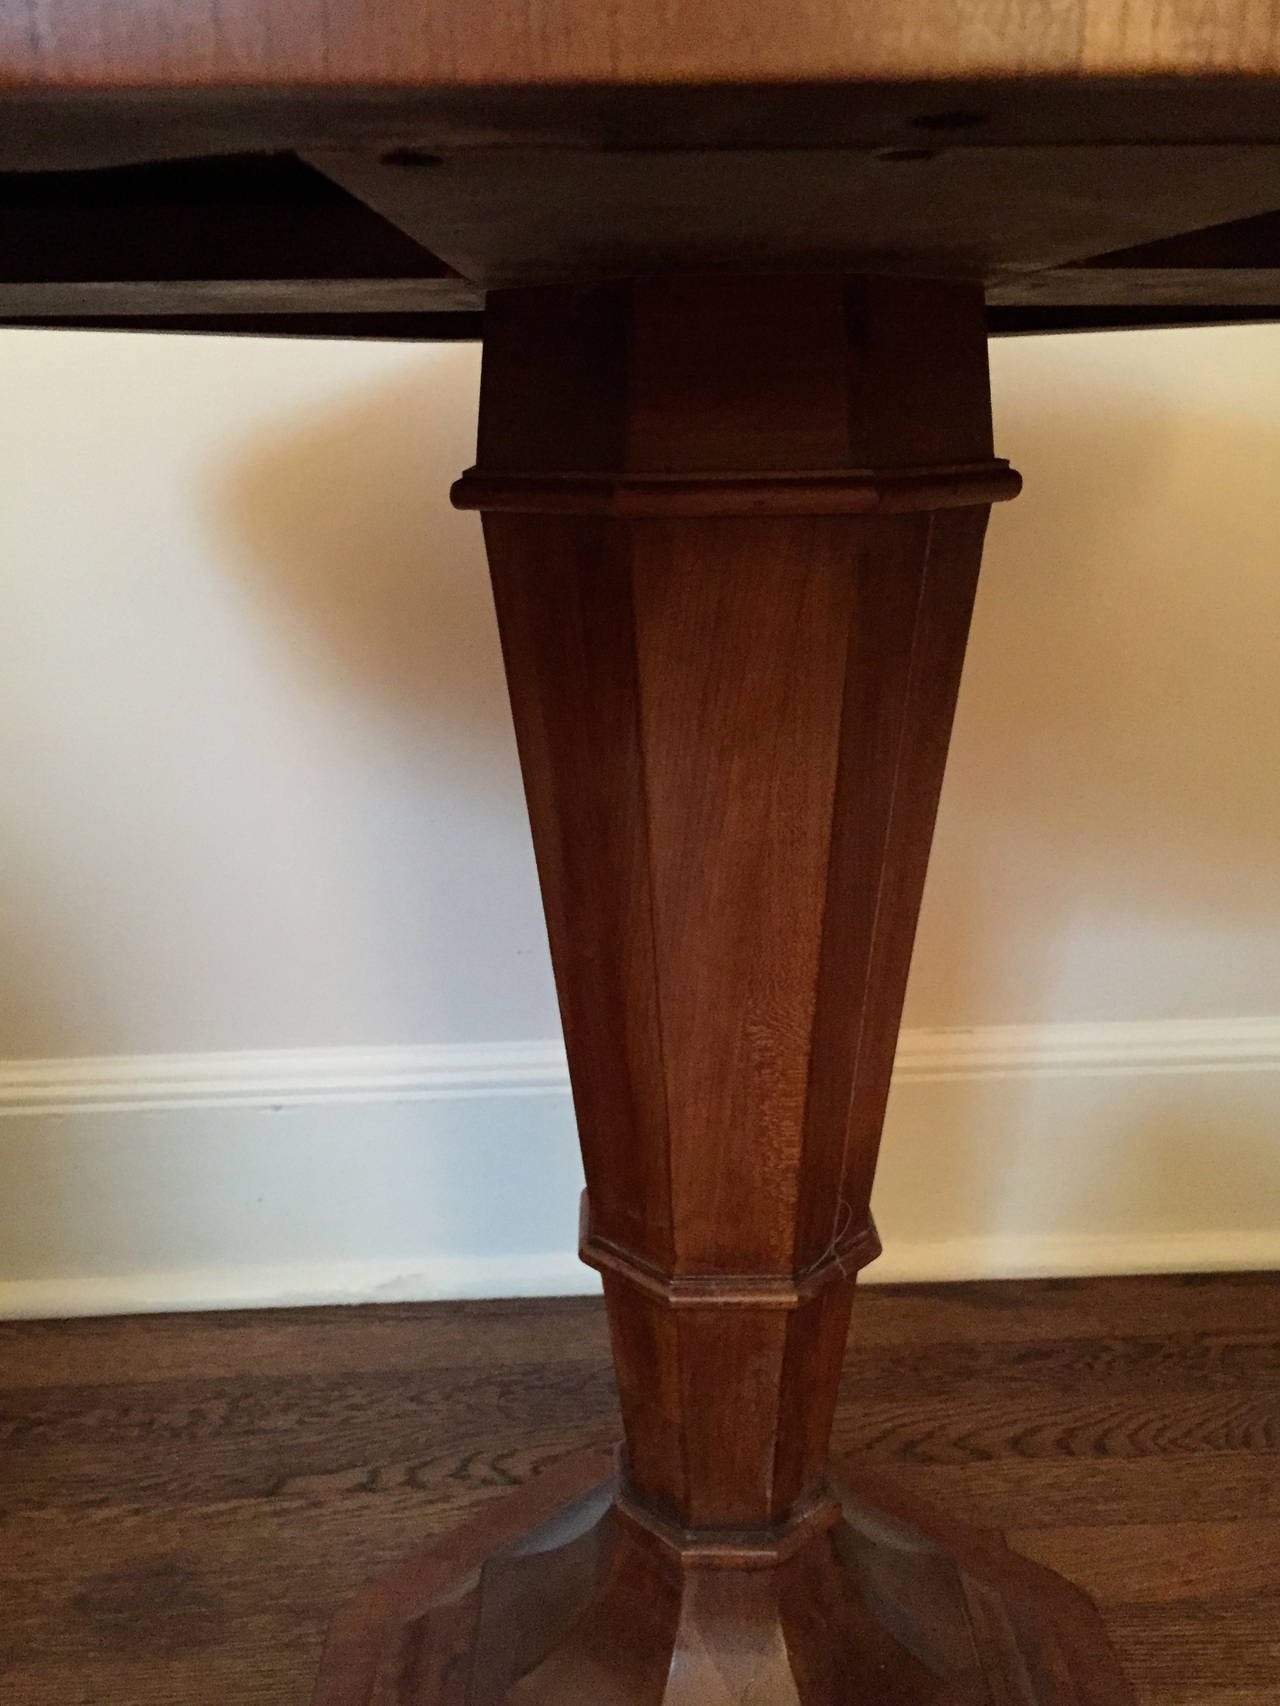 impressive pedestal co century display octees plant carved column antique oak hand for uk sale stand